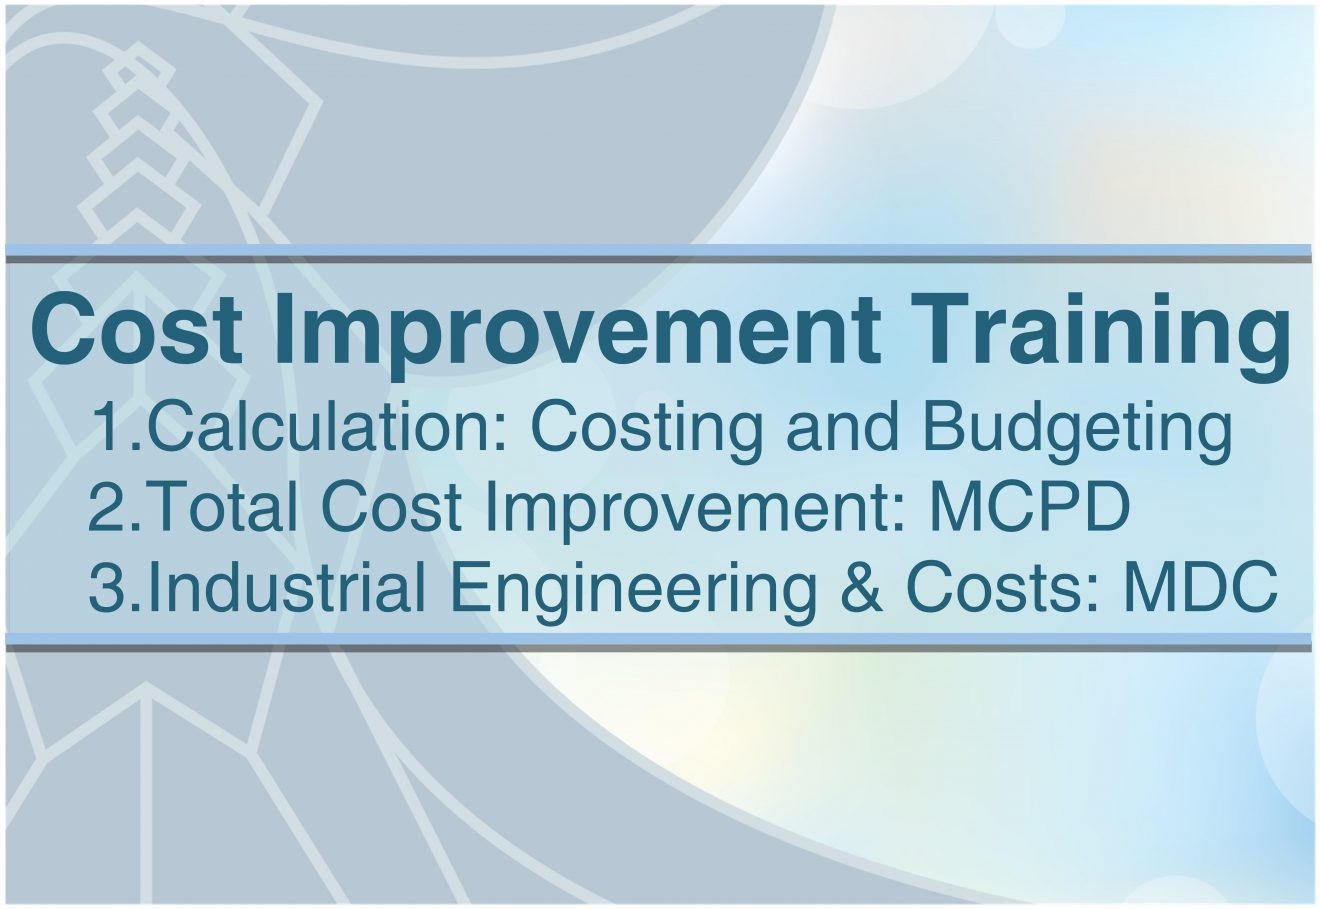 Cost Improvement Training (MCPD & MDC) by Exegens1